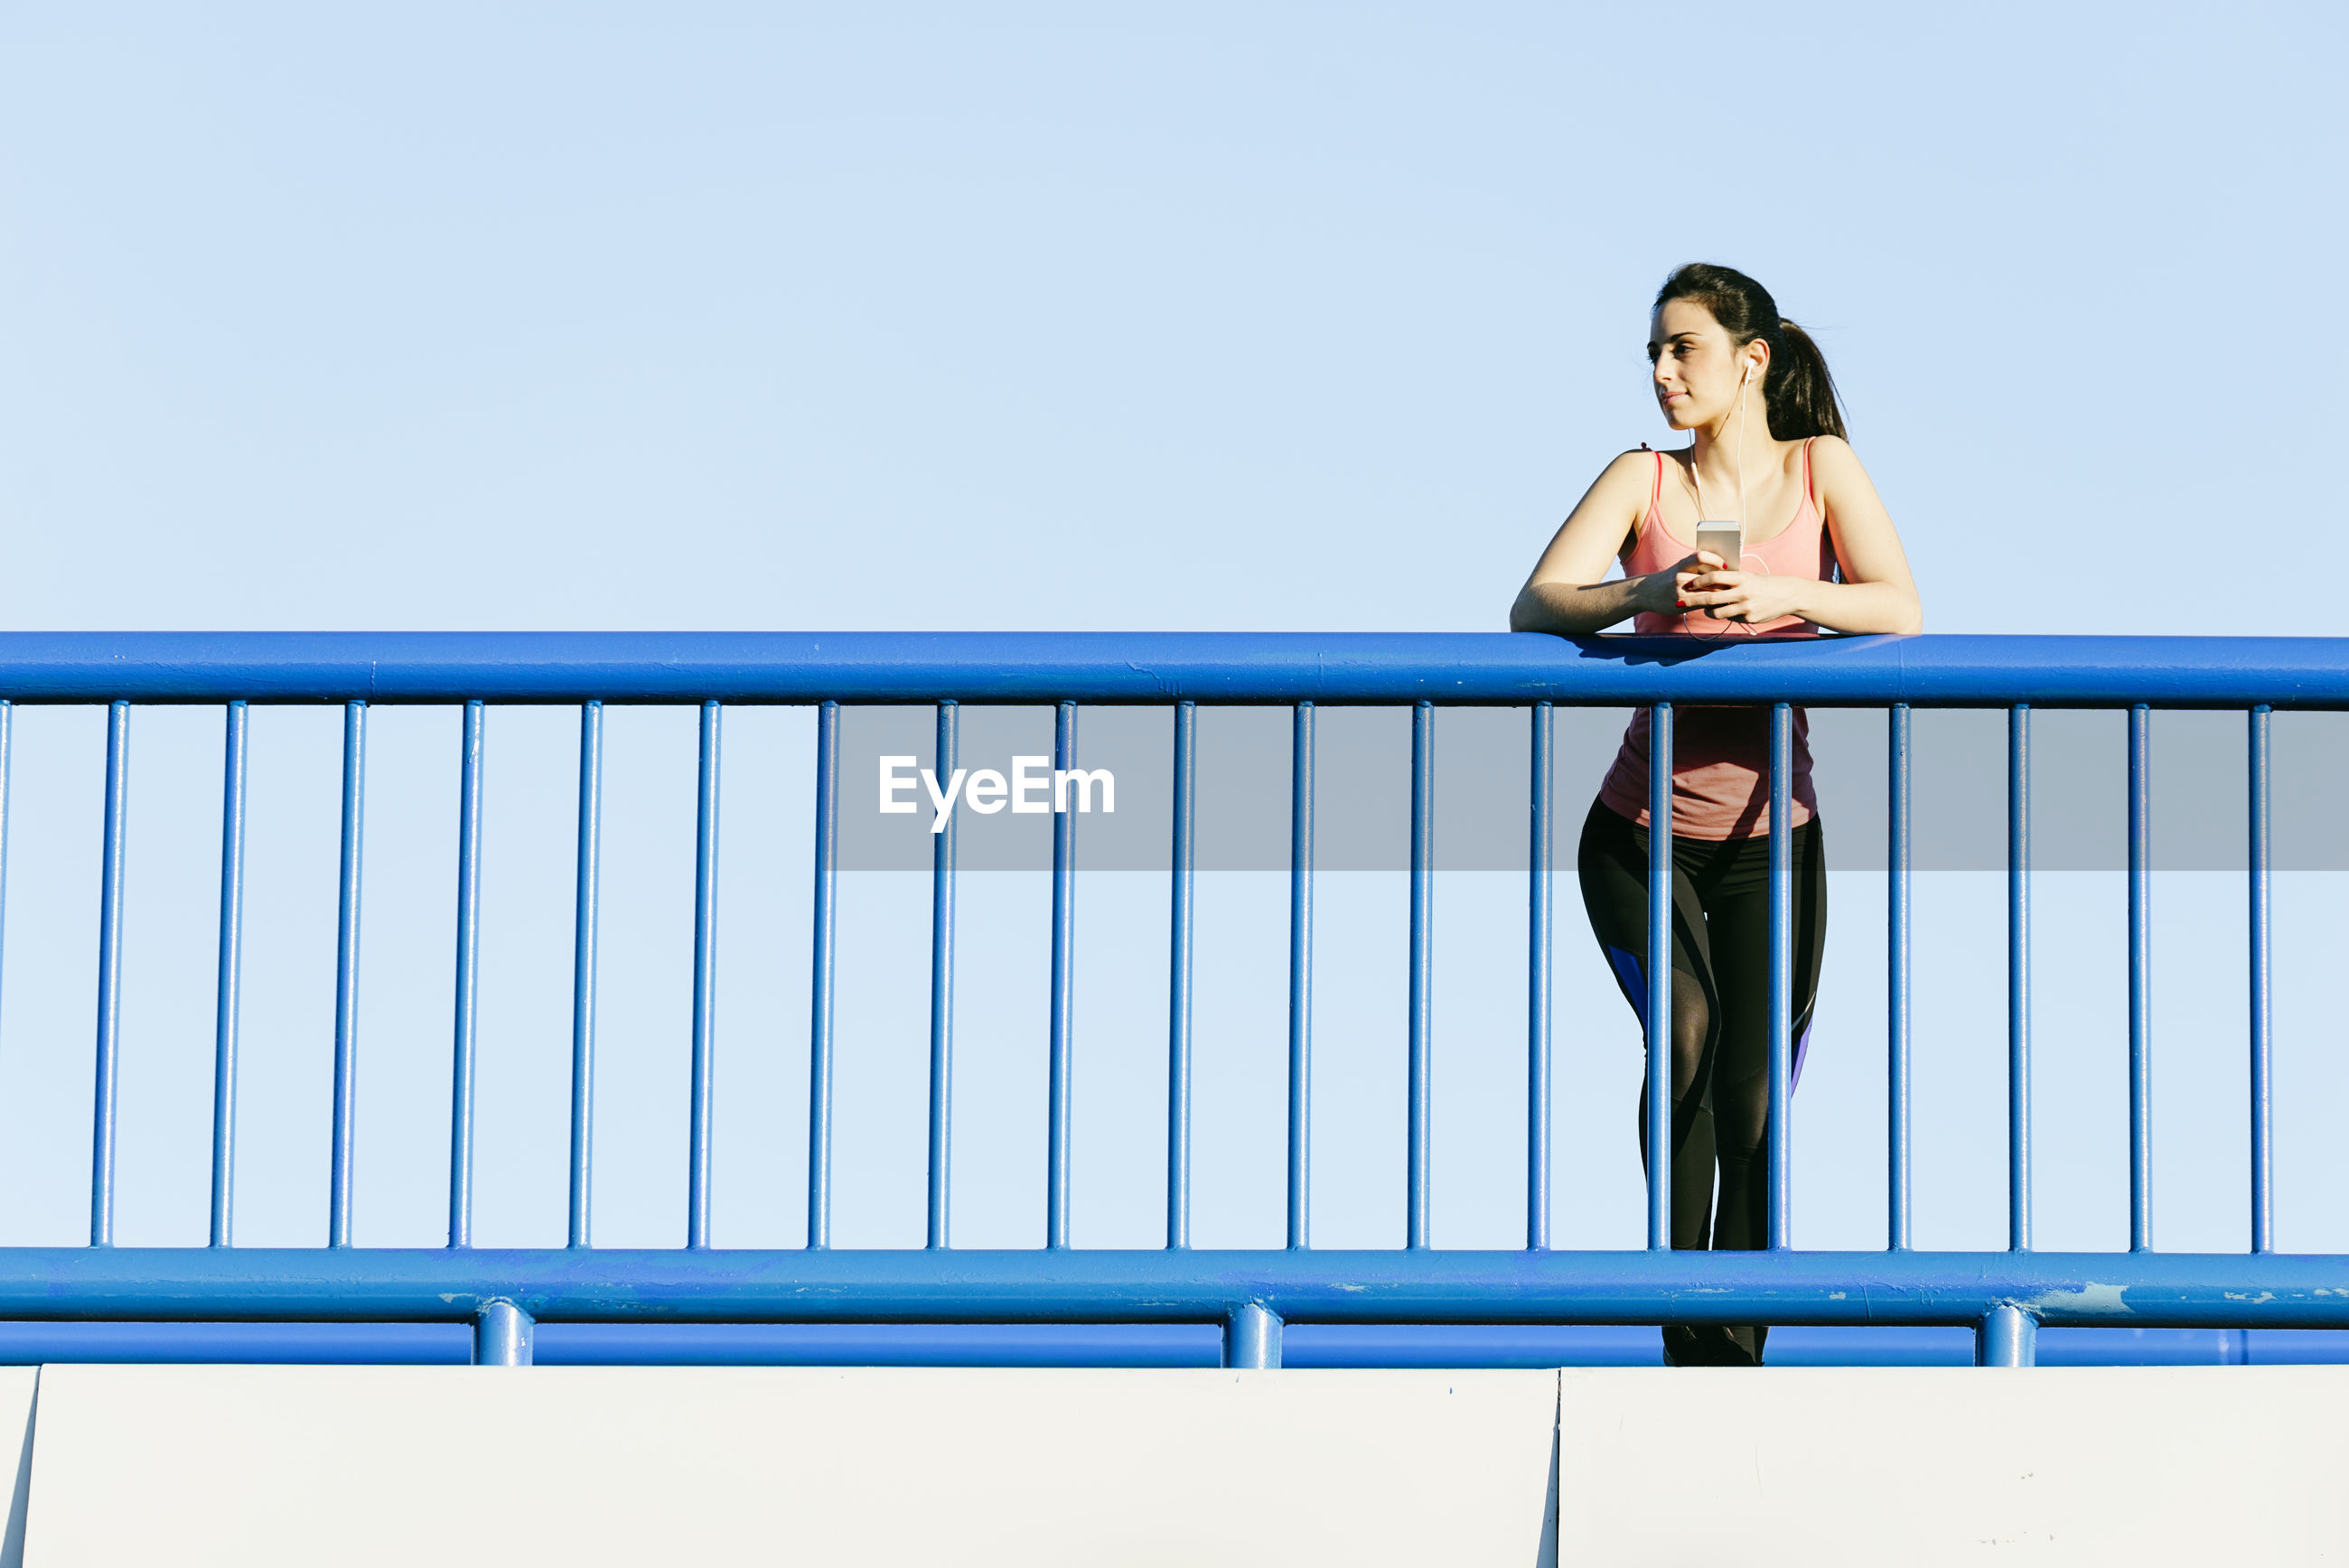 Low angle view of young woman using mobile phone while standing on footbridge against clear sky